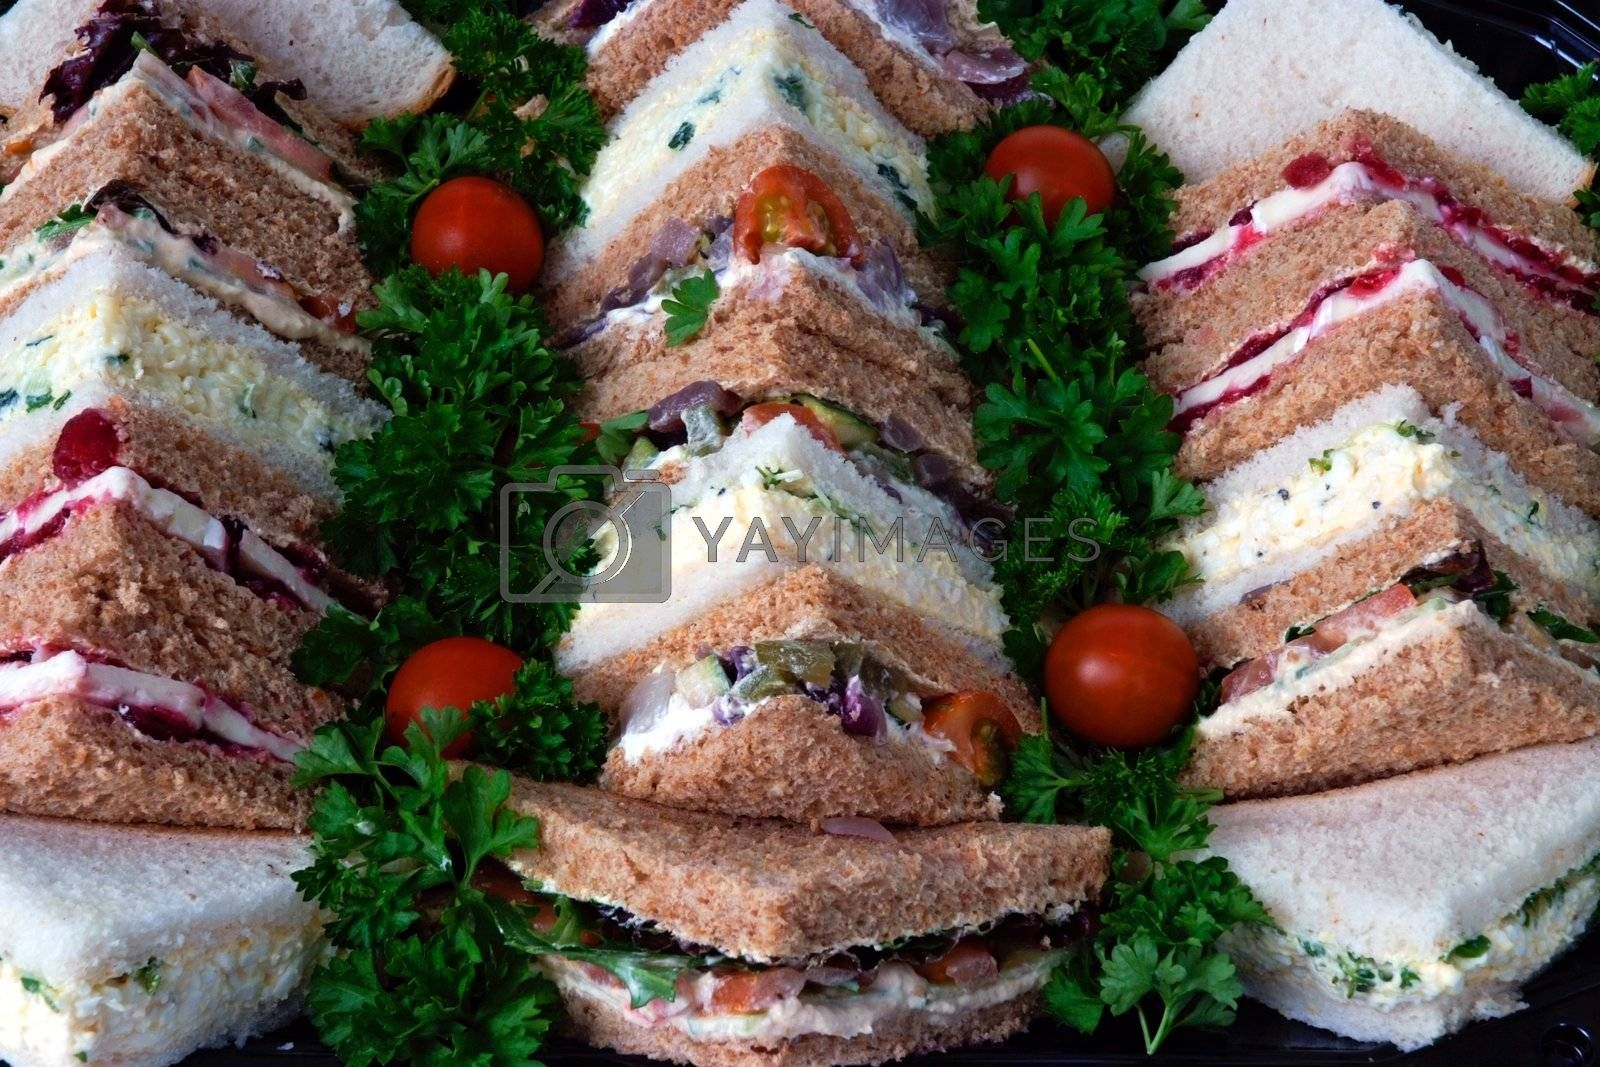 Sandwiches cut into triangles on a tray prepared for a business lunch